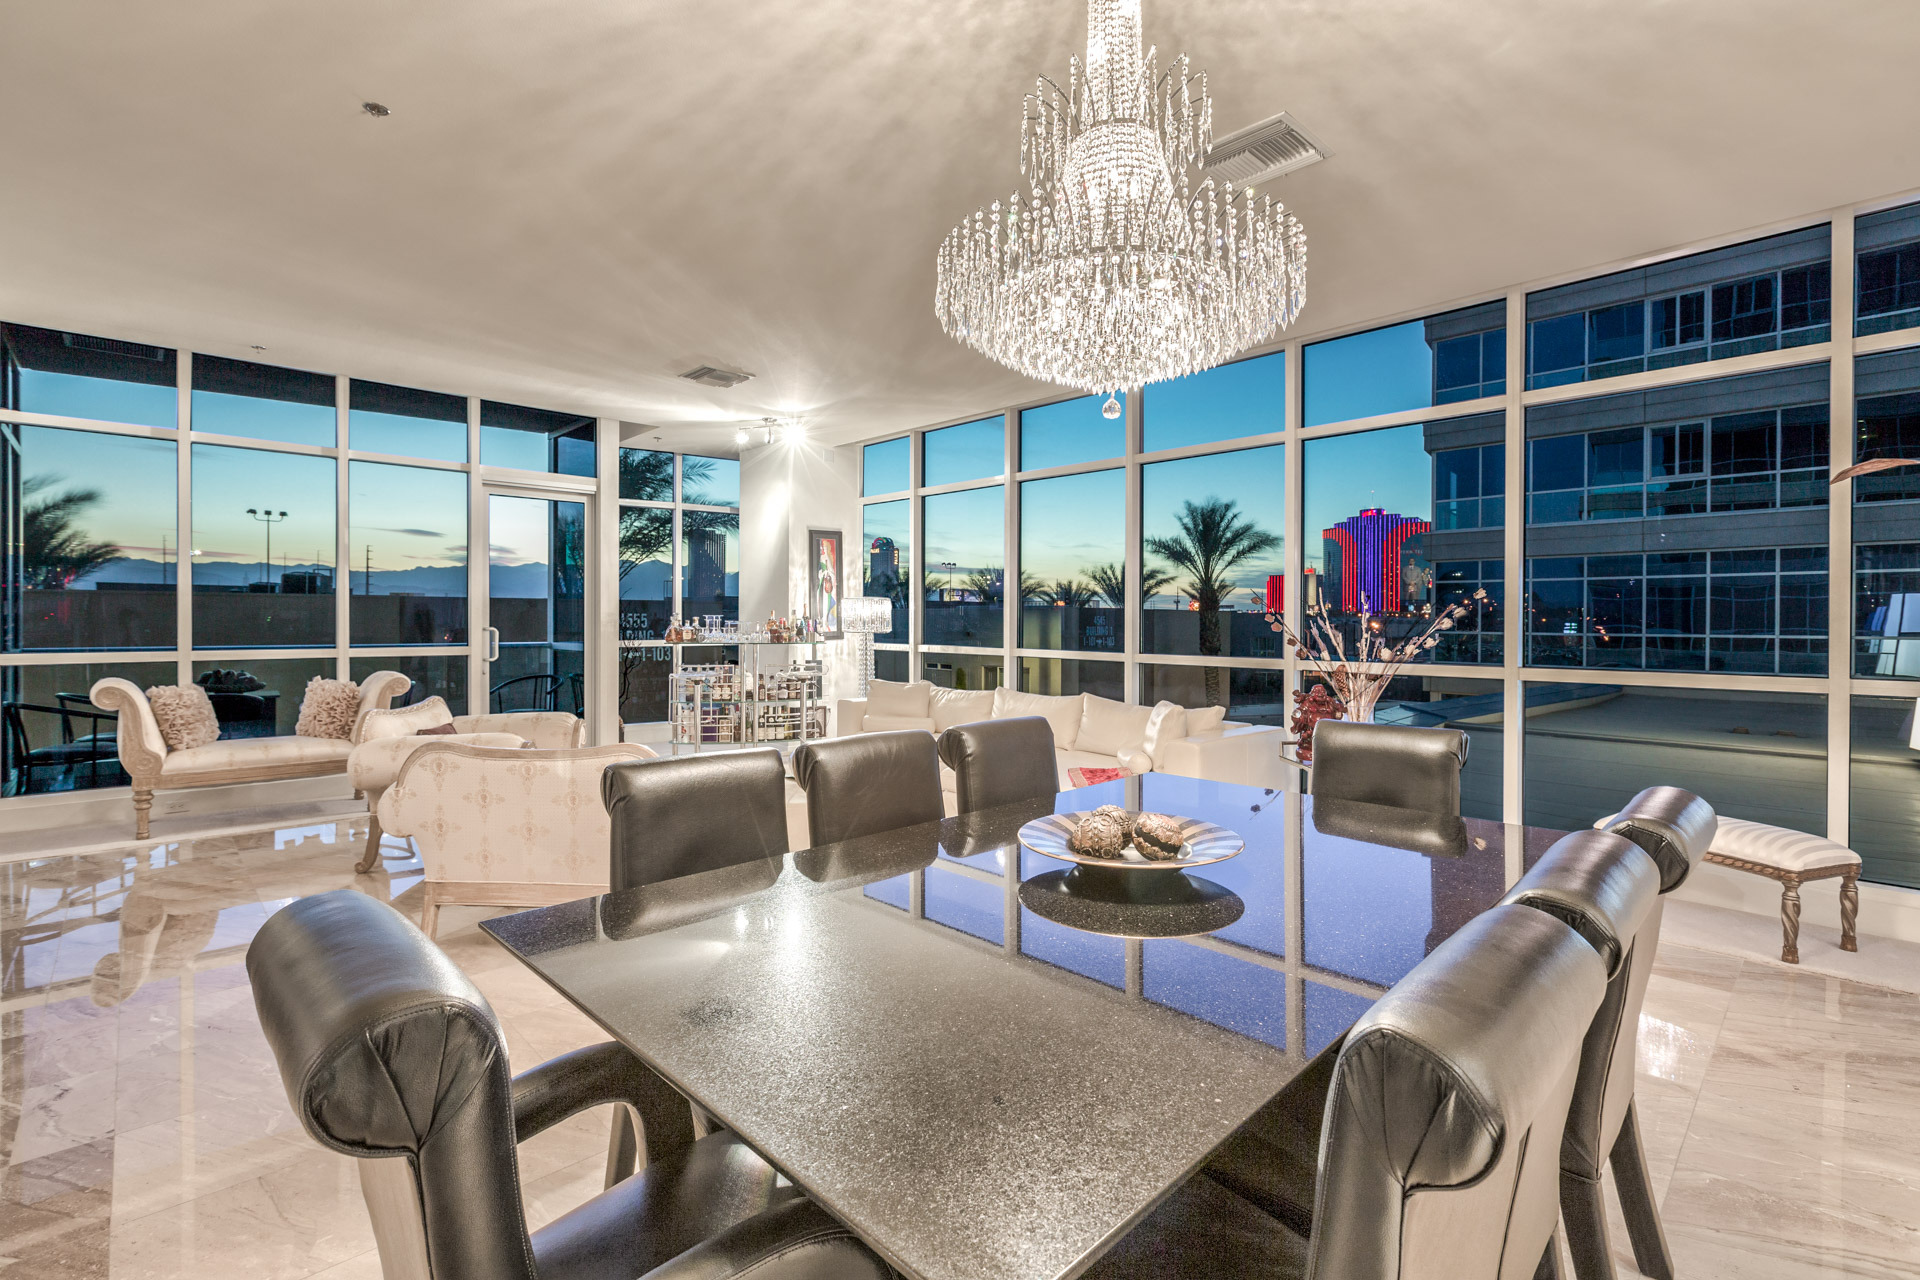 Panorama Towers # 307 in Tower 2 for Sale by Elite Realty and The Stark team, Las Vegas Luxury High Rise Real Estate Agents.